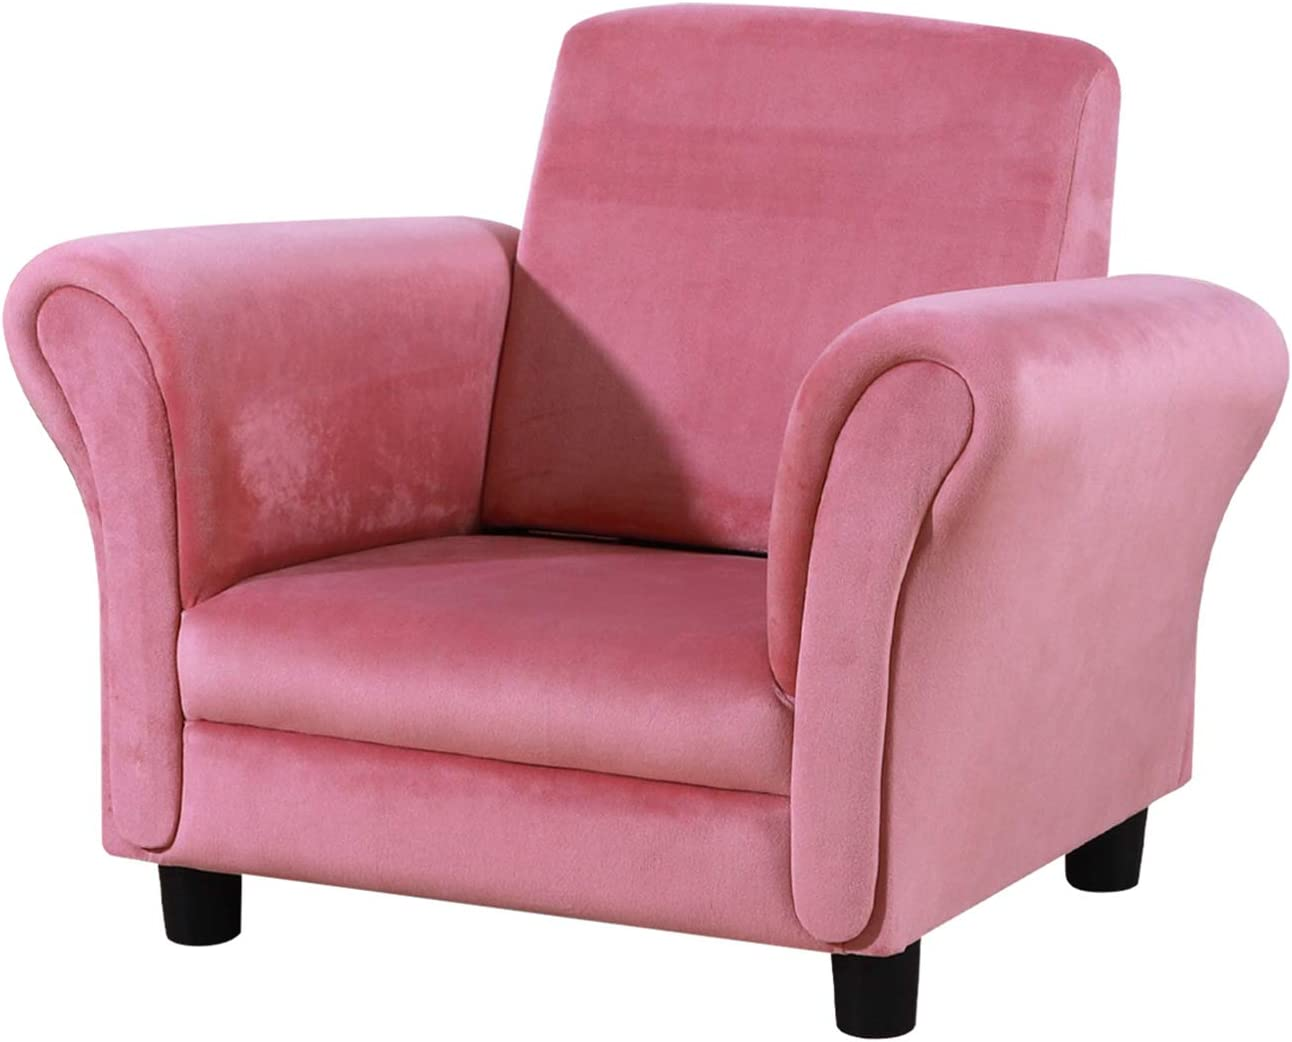 Single Upholstered Kids Armchair, Little Sofa Couch for Toddler with Wooden and Velvet (Pink)